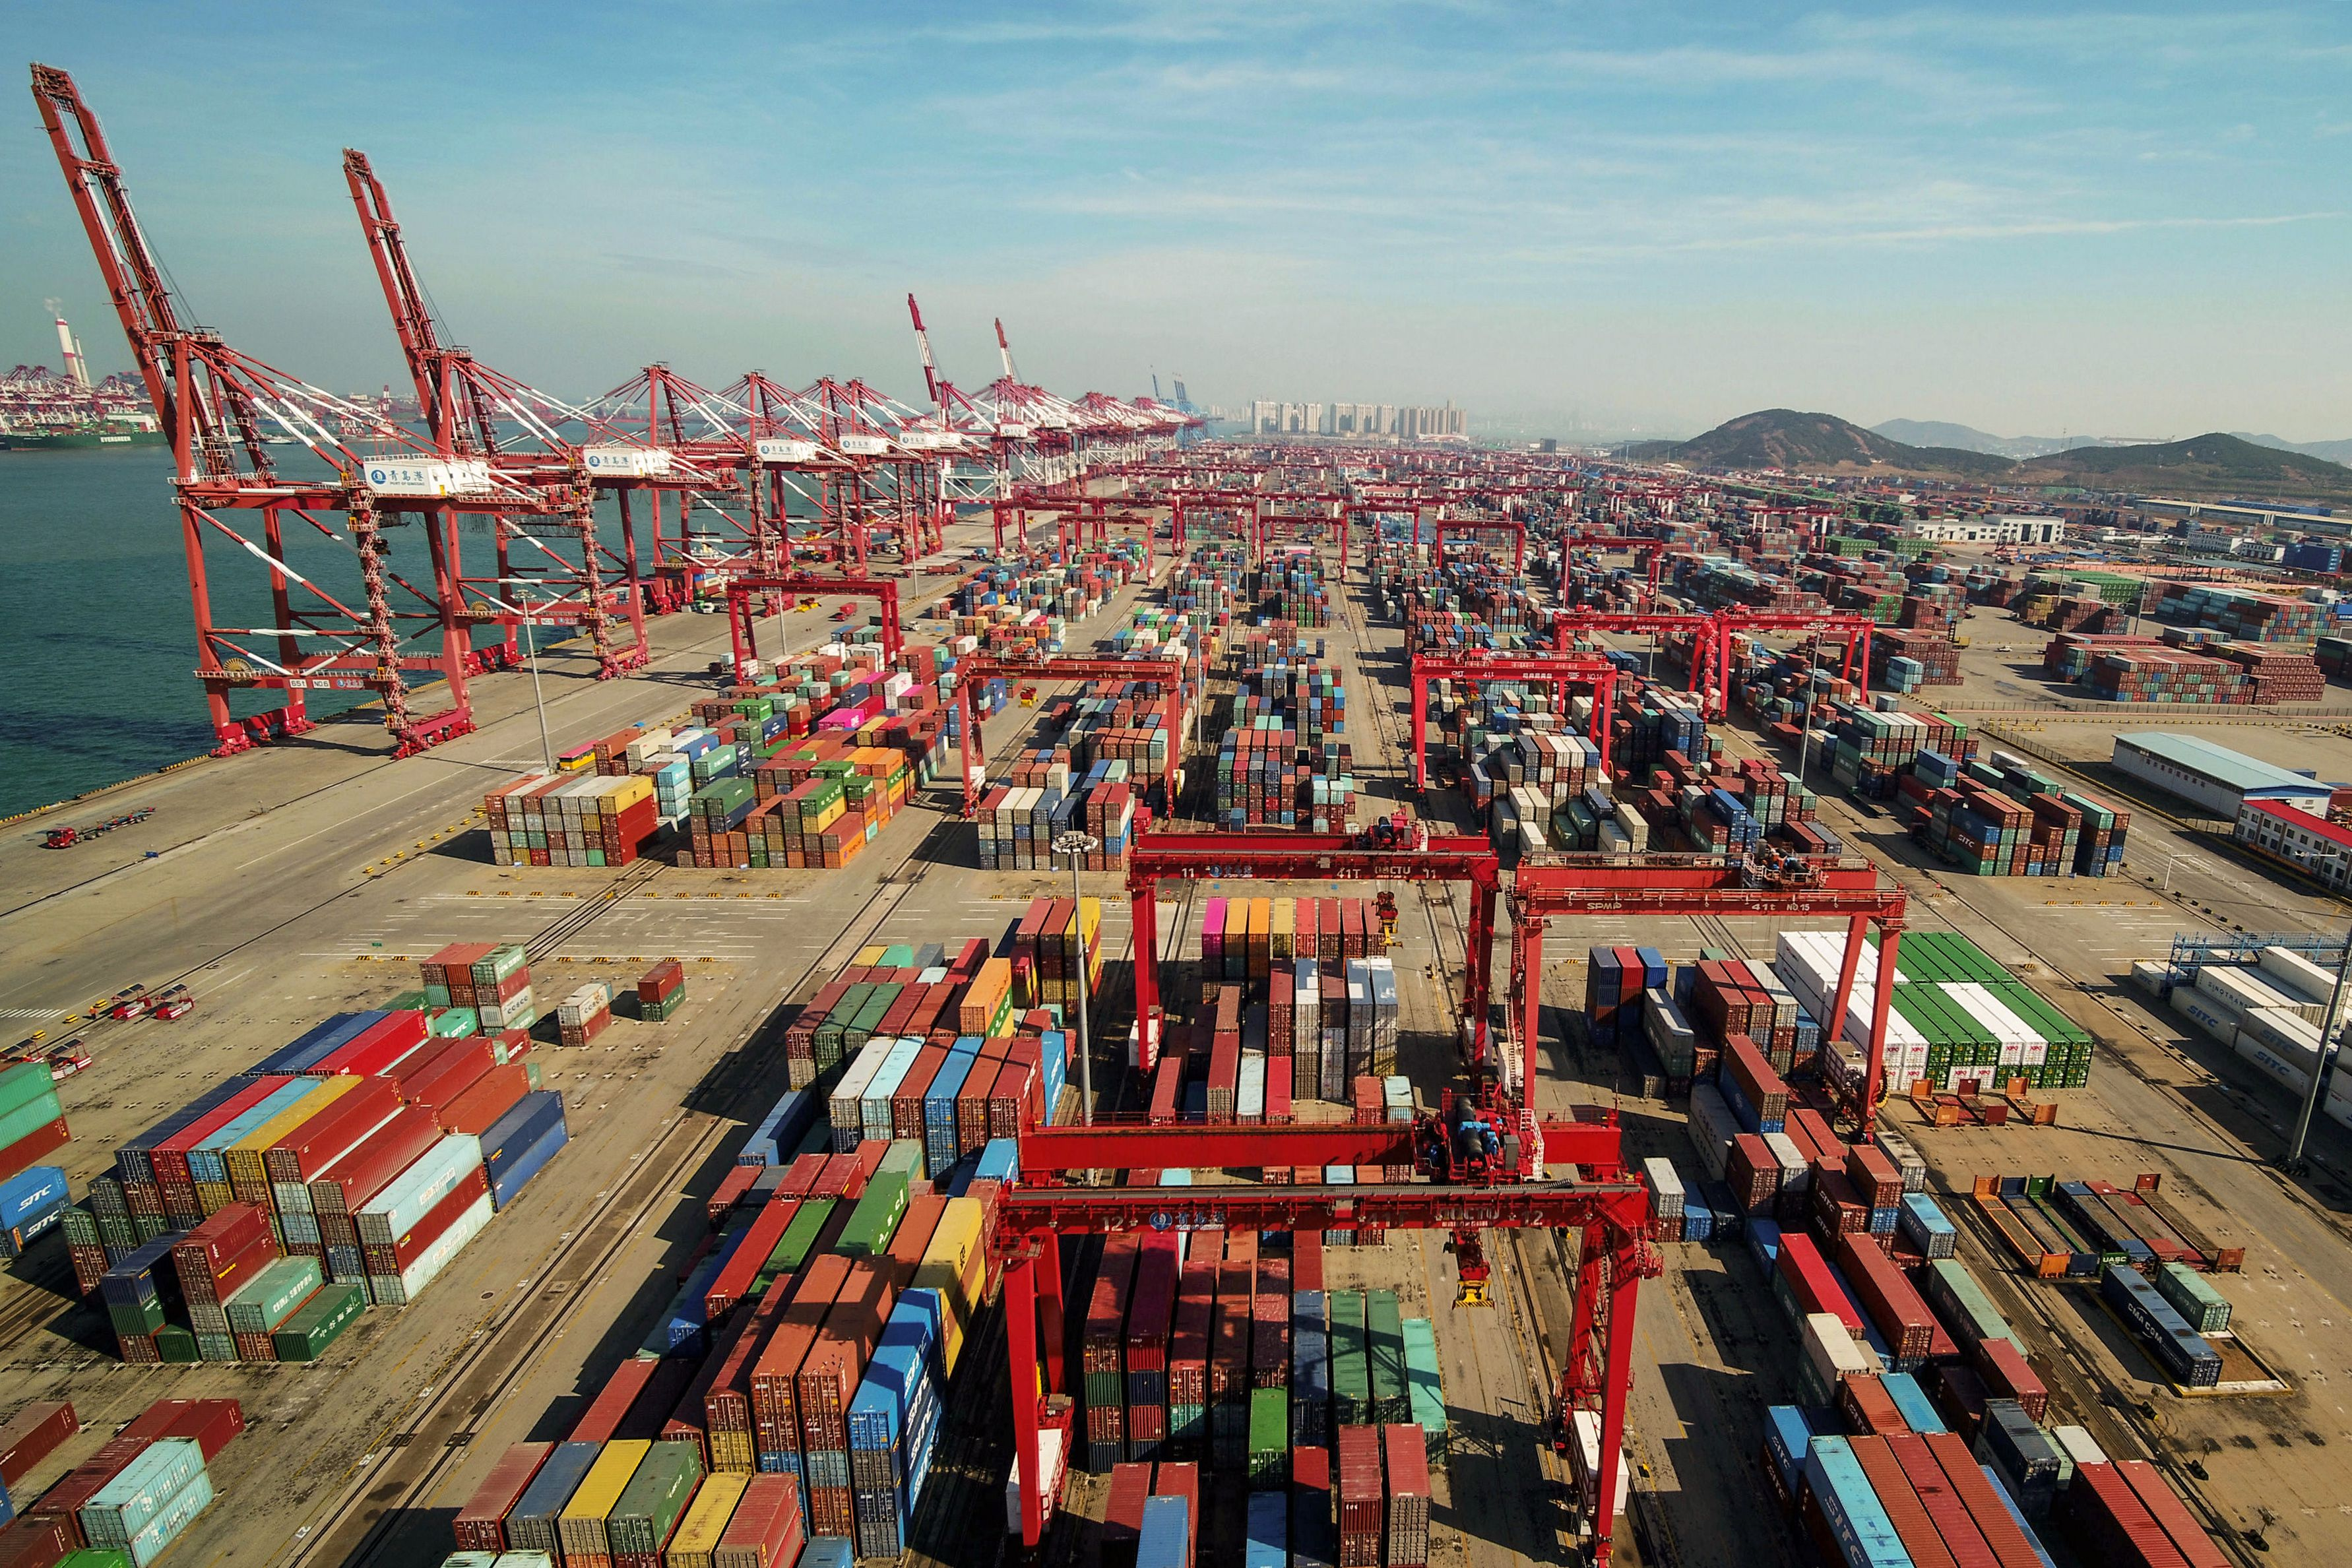 An aerial view of a port in Qingdao, east China's Shandong province on November 8, 2018. - China's exports to the US and the rest of the world grew more than expected in October, official data showed on November 8, as its traders apparently rushed shipments across the Pacific ahead of higher tariffs. / STR/AFP via Getty Images